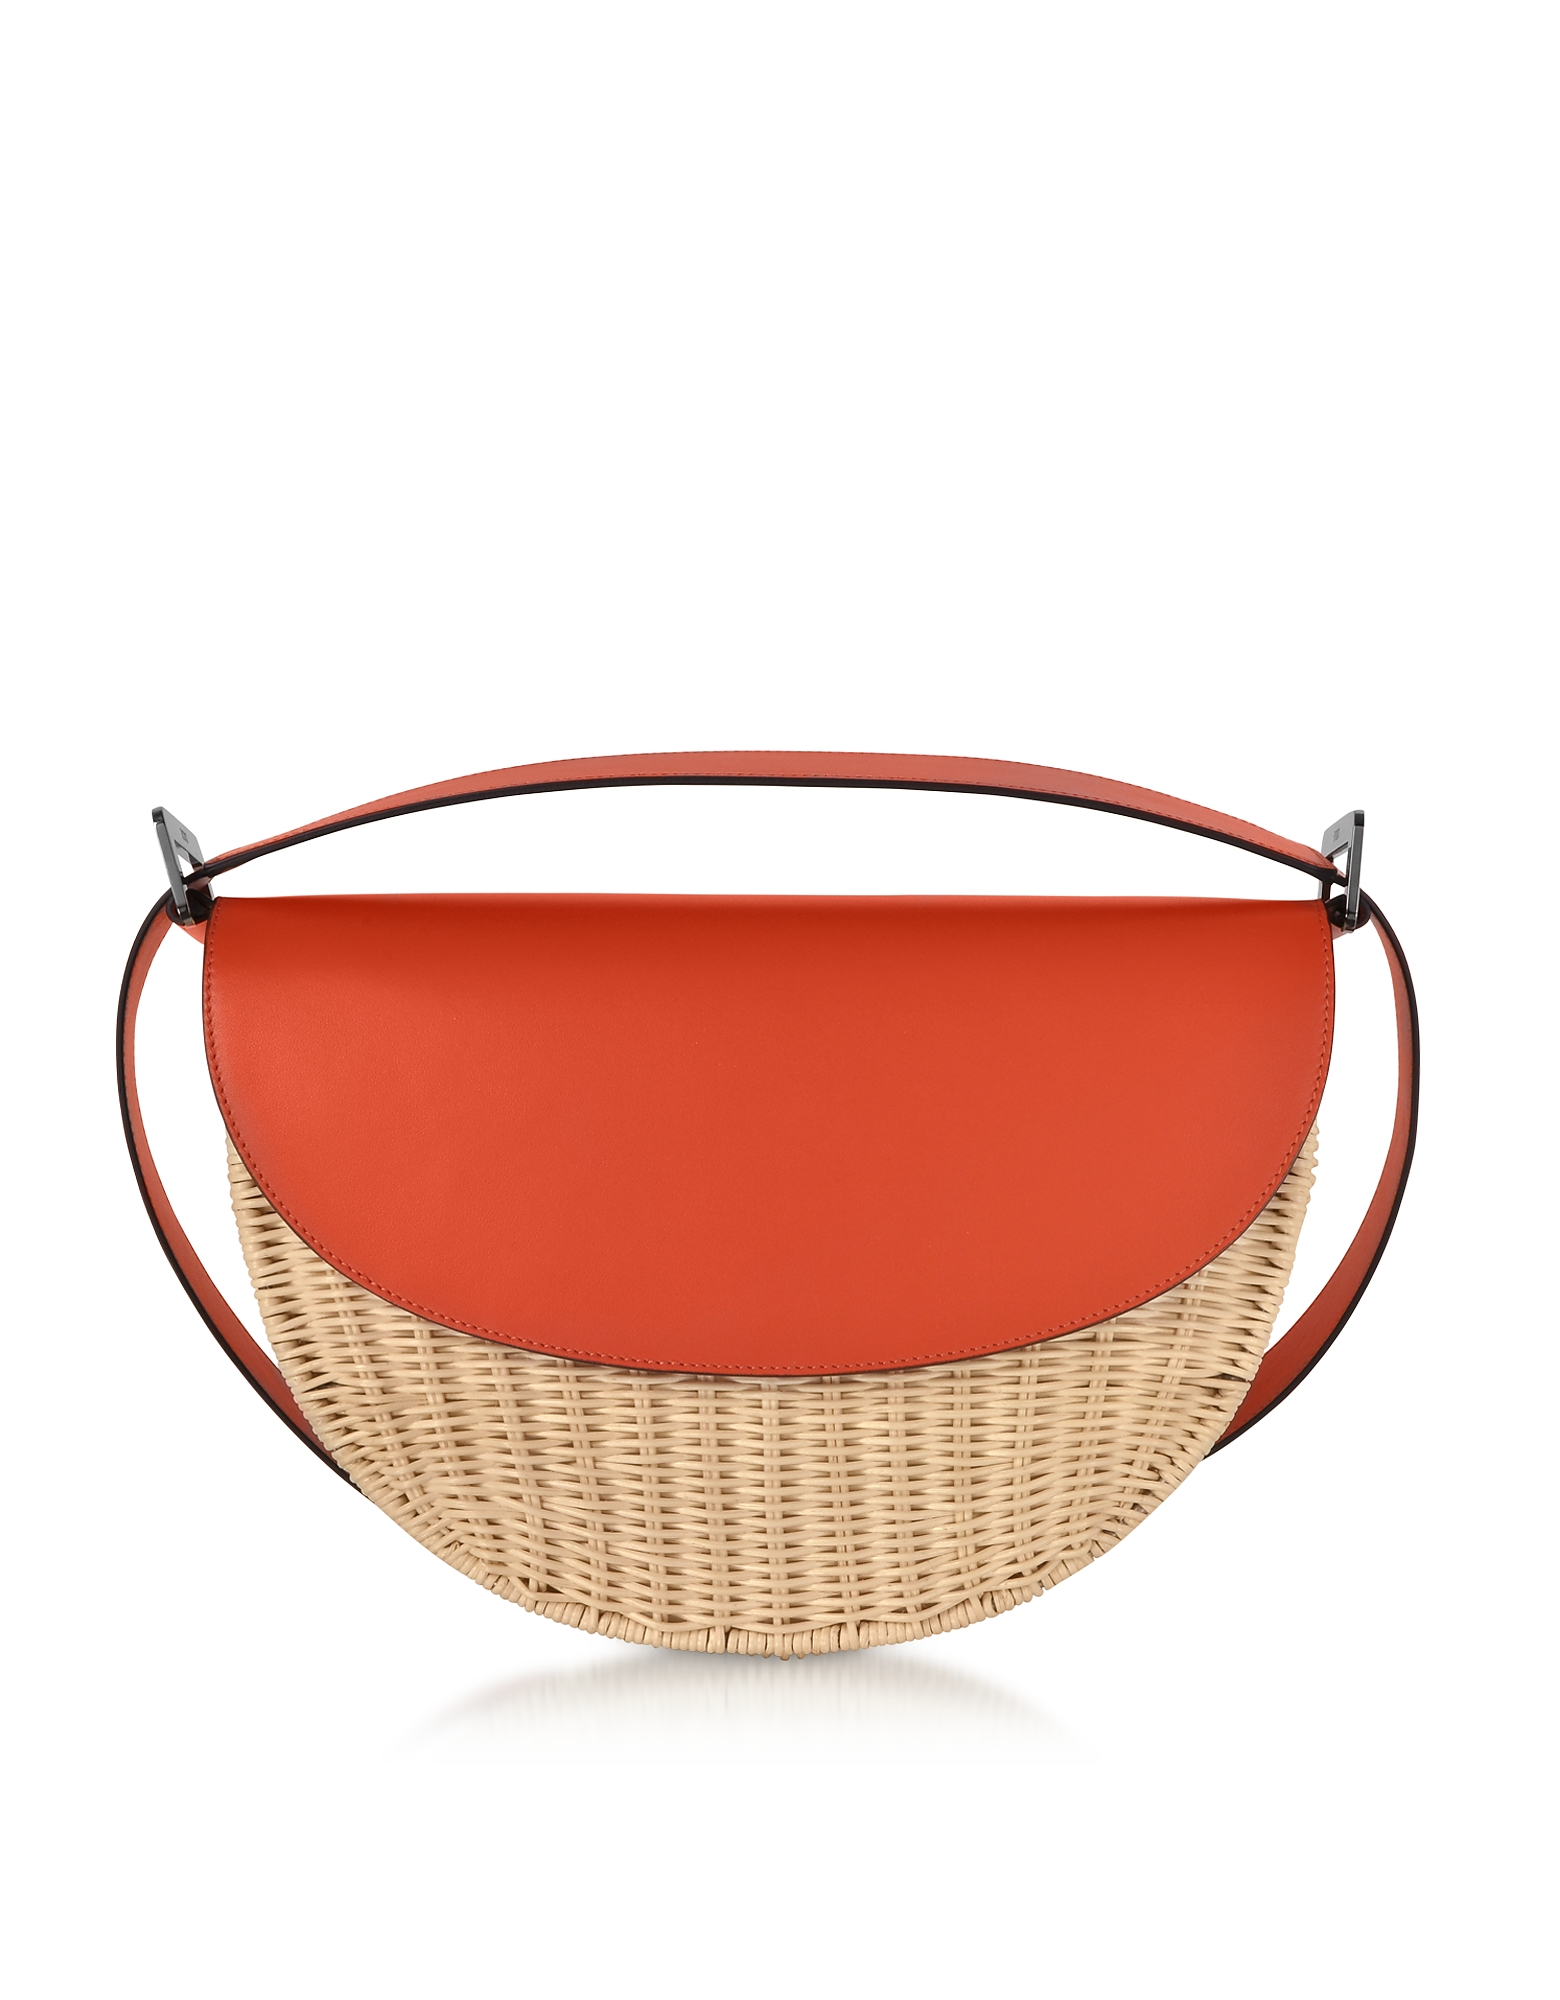 Rodo Handbags, Woven Wicker and Leather Half-Moon Shoulder Bag